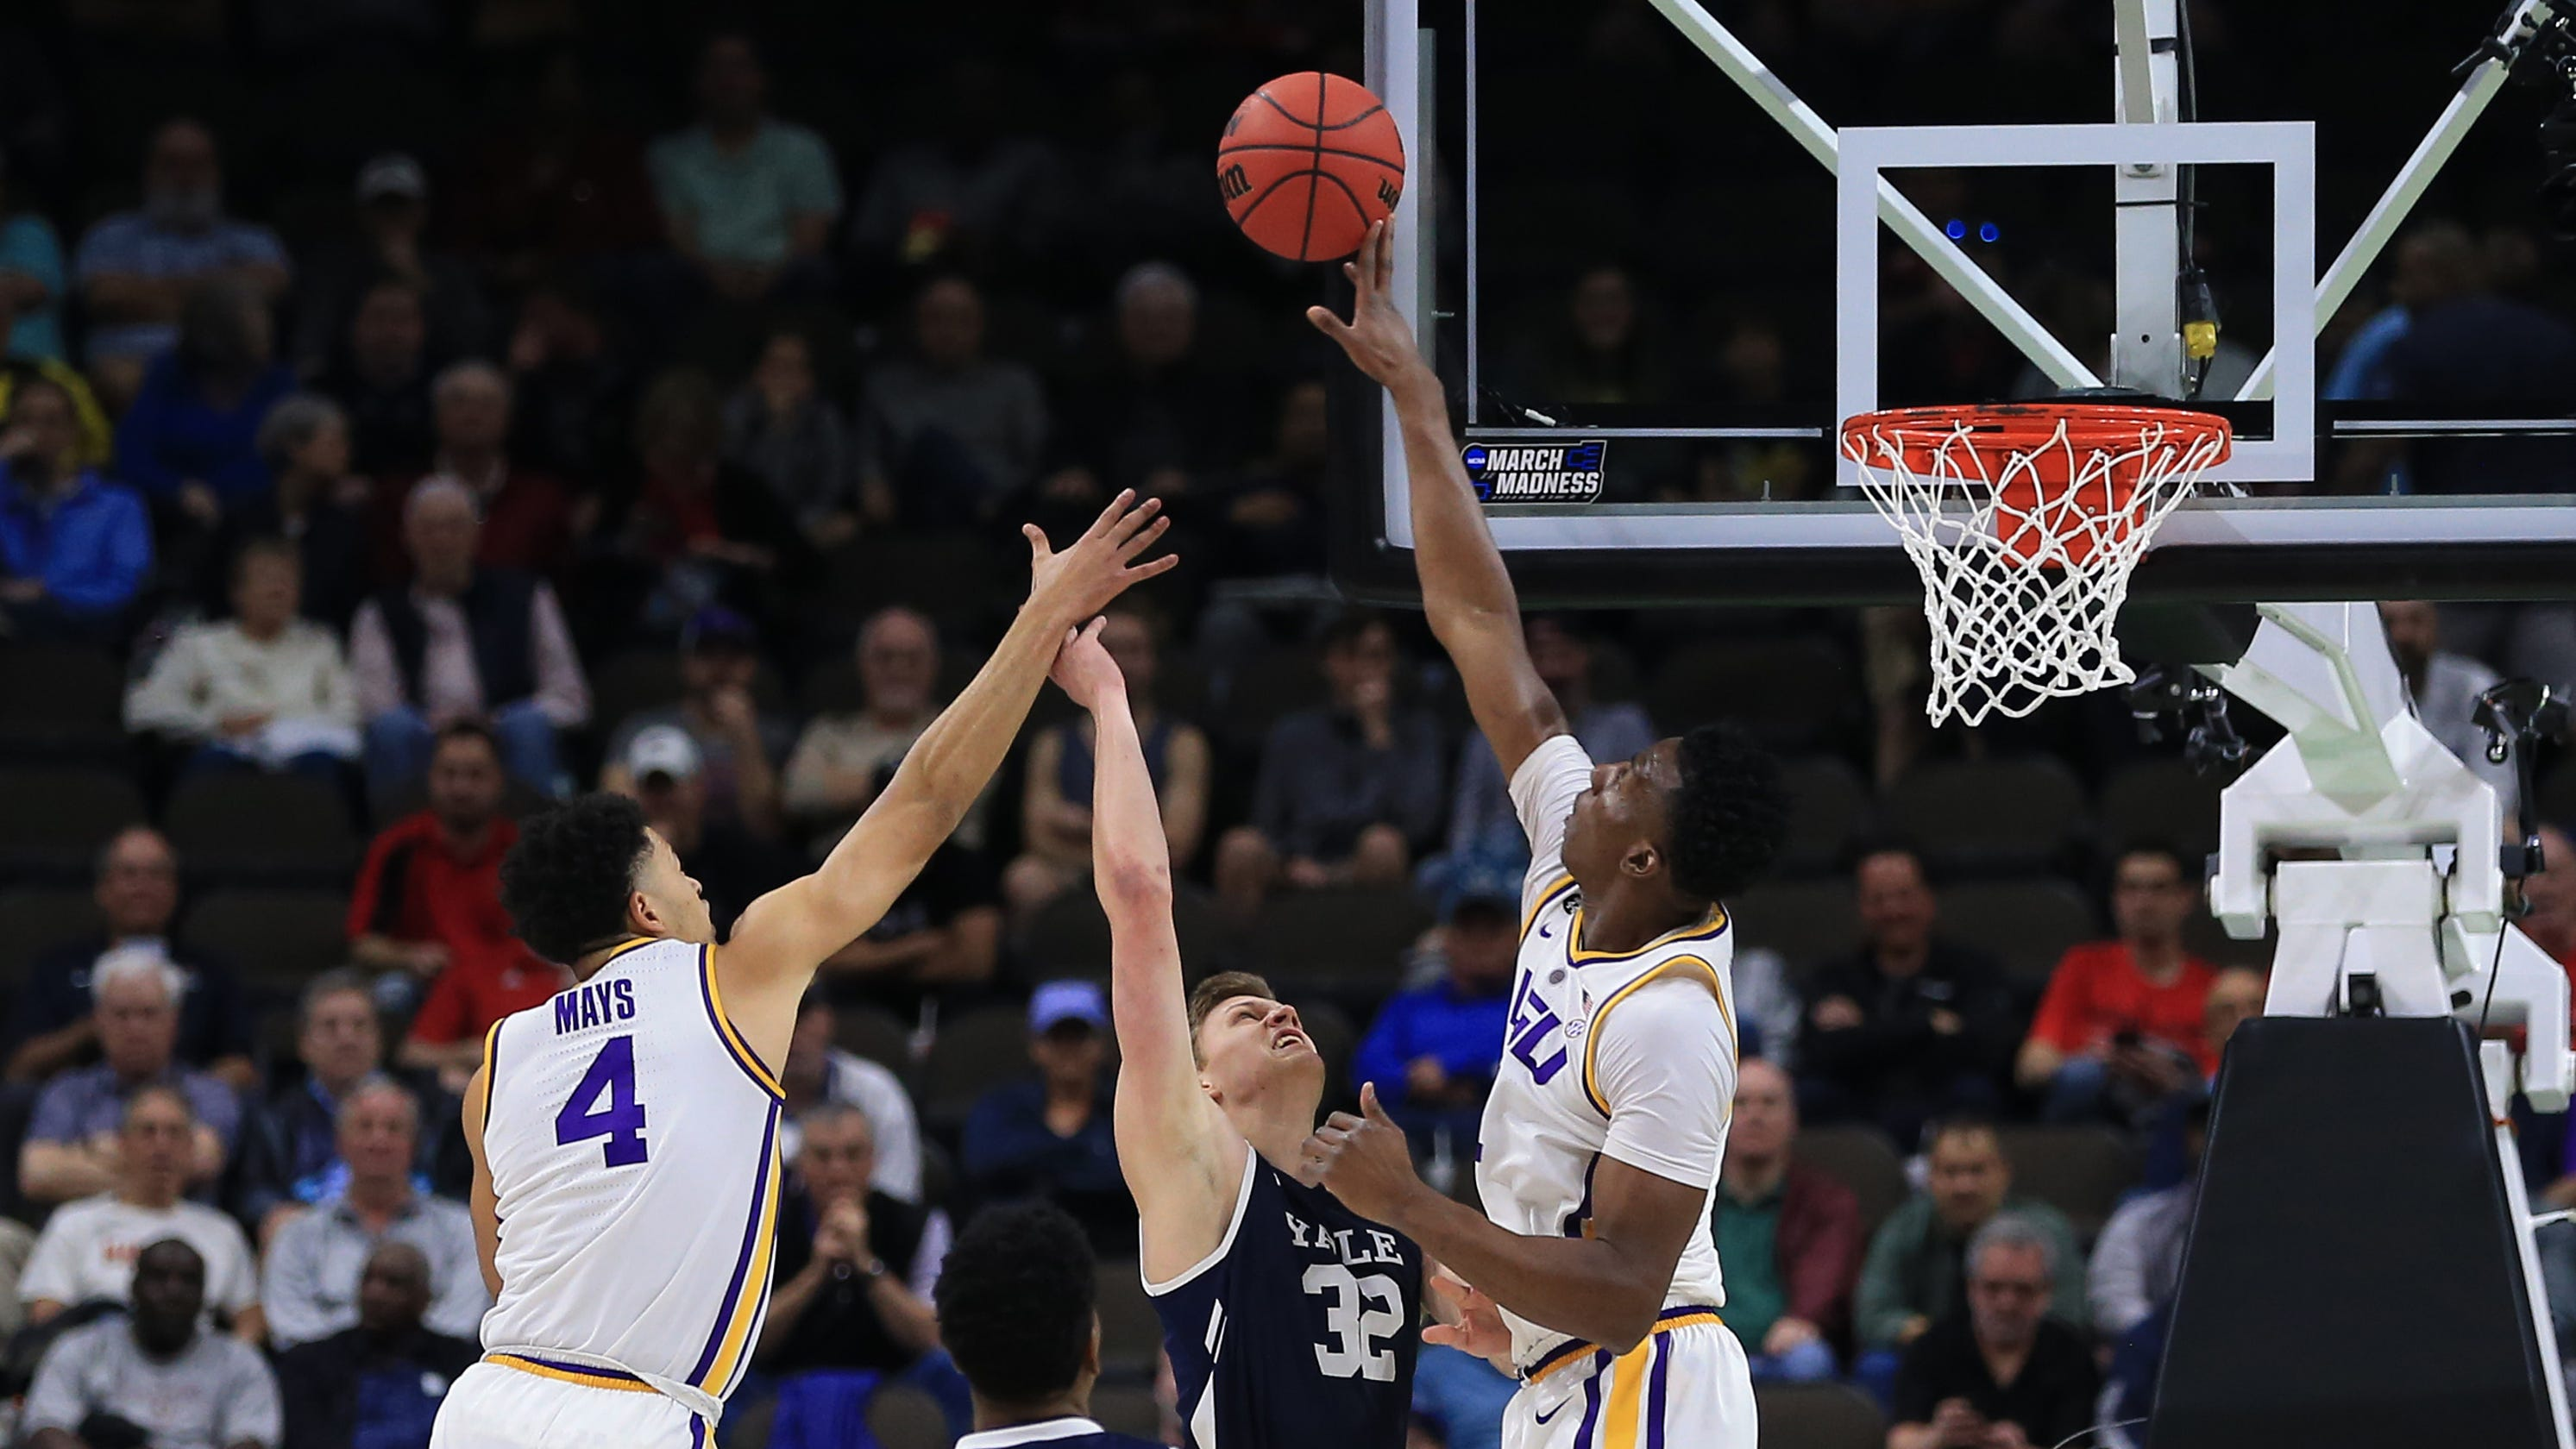 NCAA tournament live: Take in all the bracket-busters of March Madness as they happen here